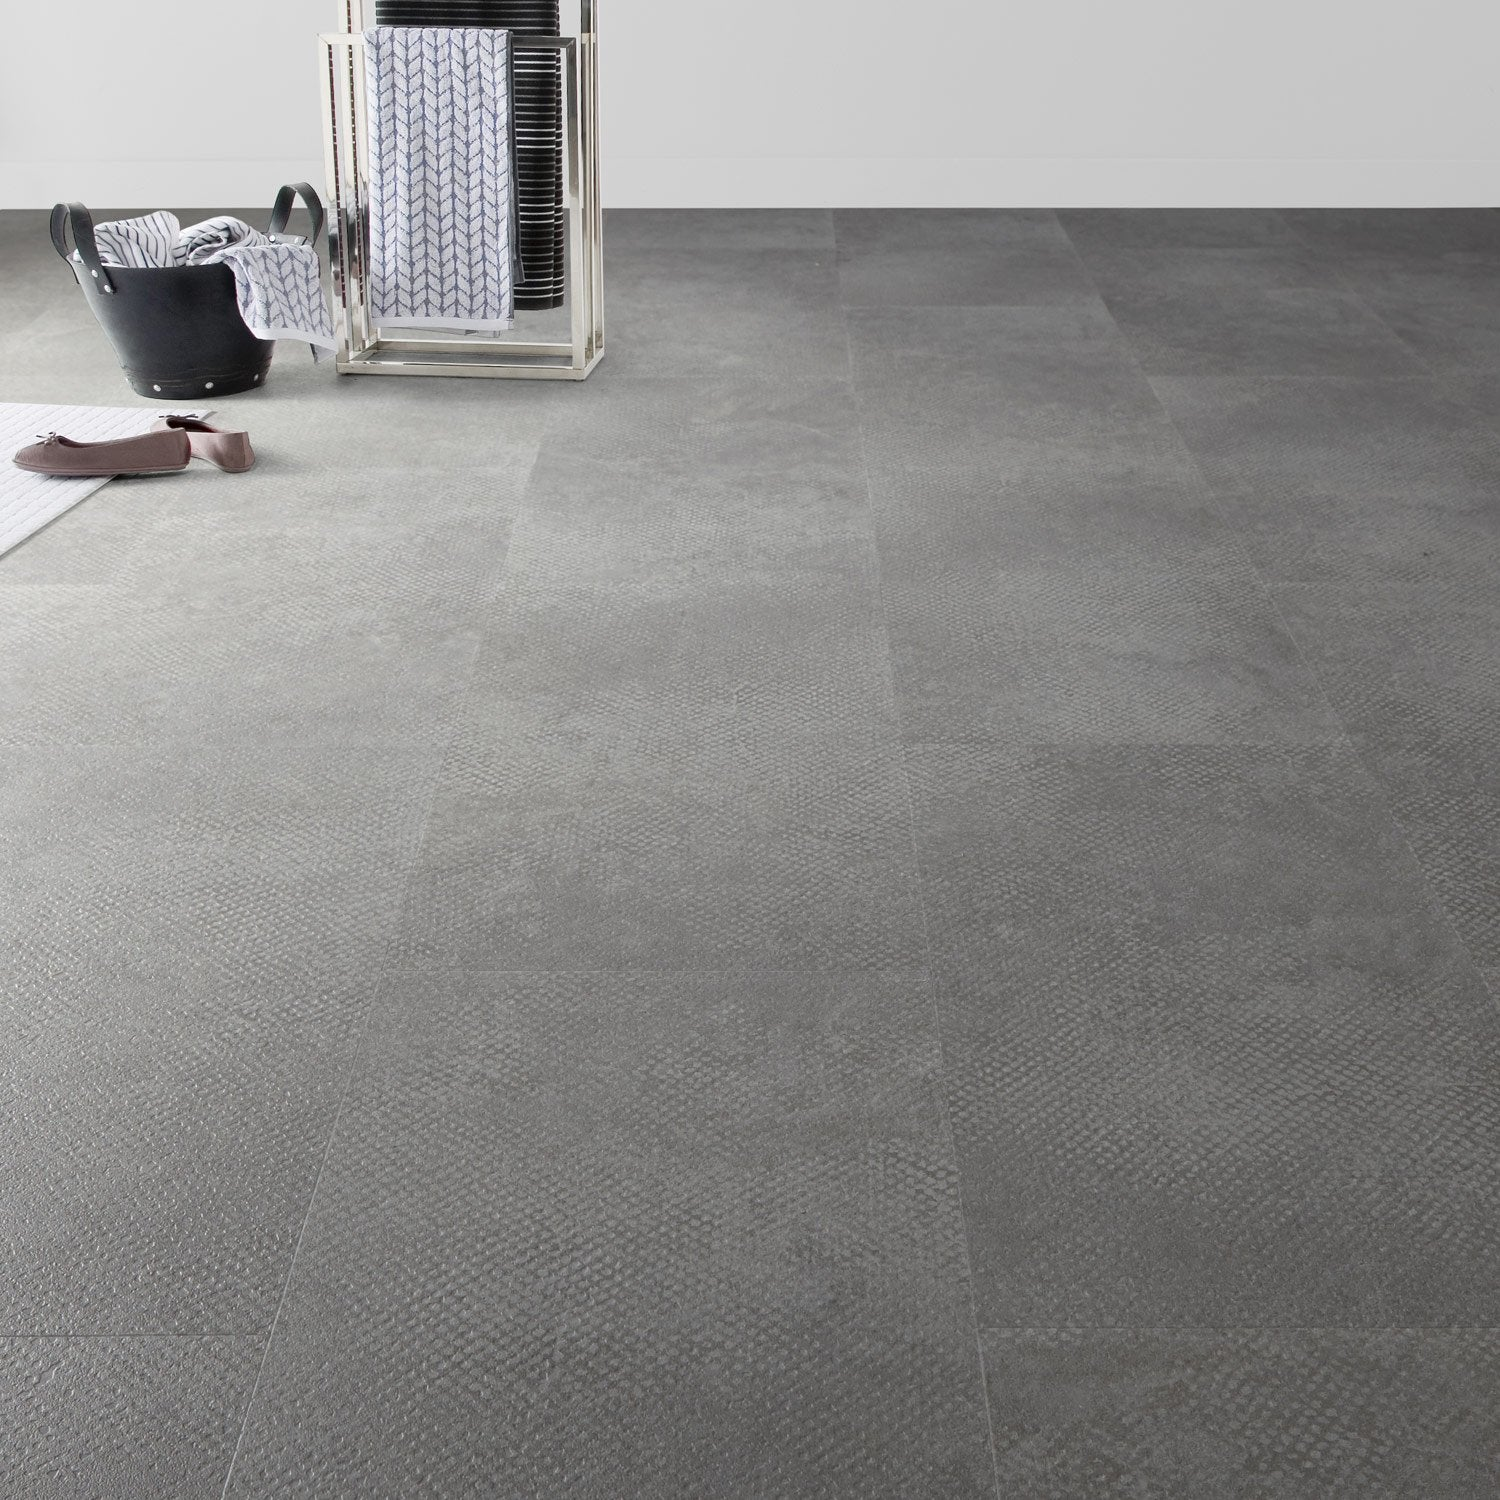 Dalle gerflor pas cher for Dalles pvc clipsables gerflor